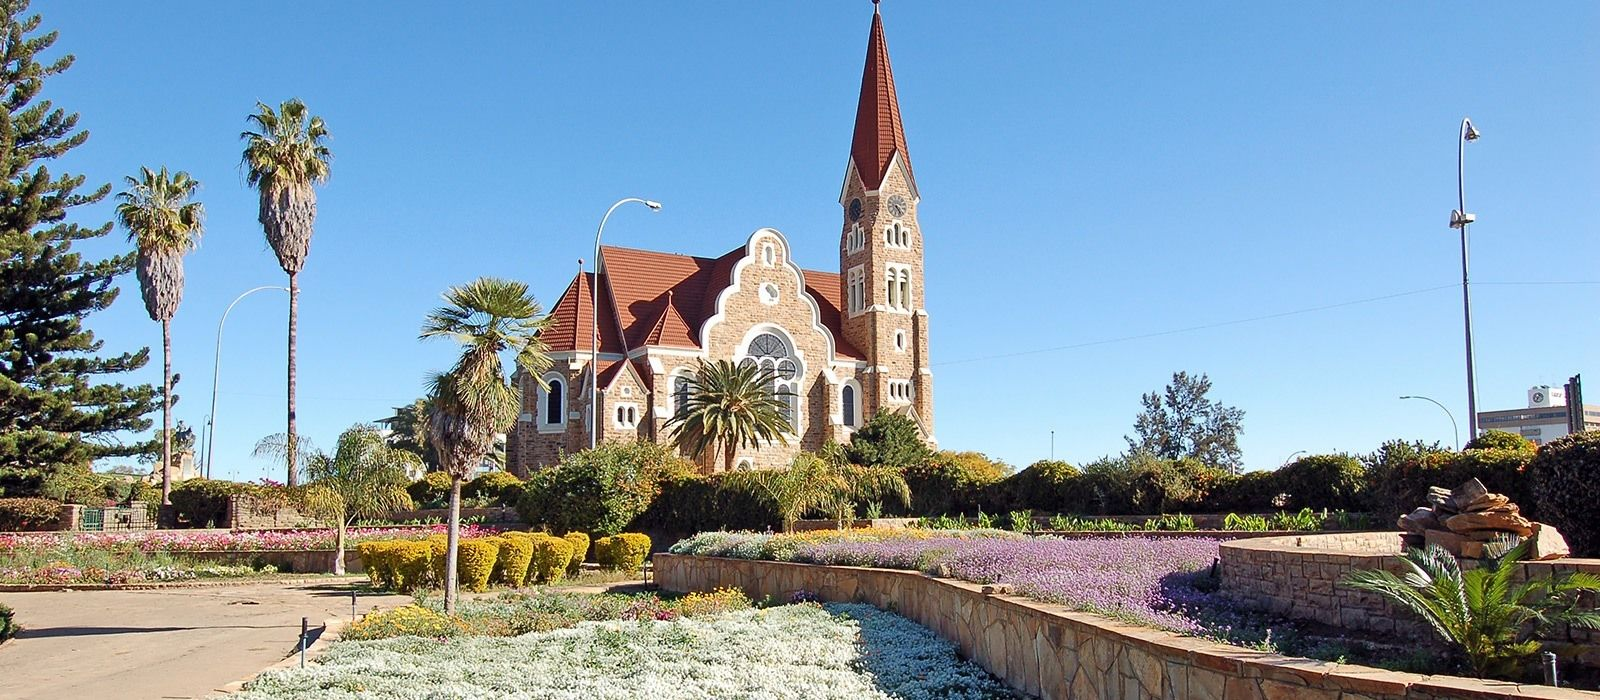 Destination Windhoek Namibia